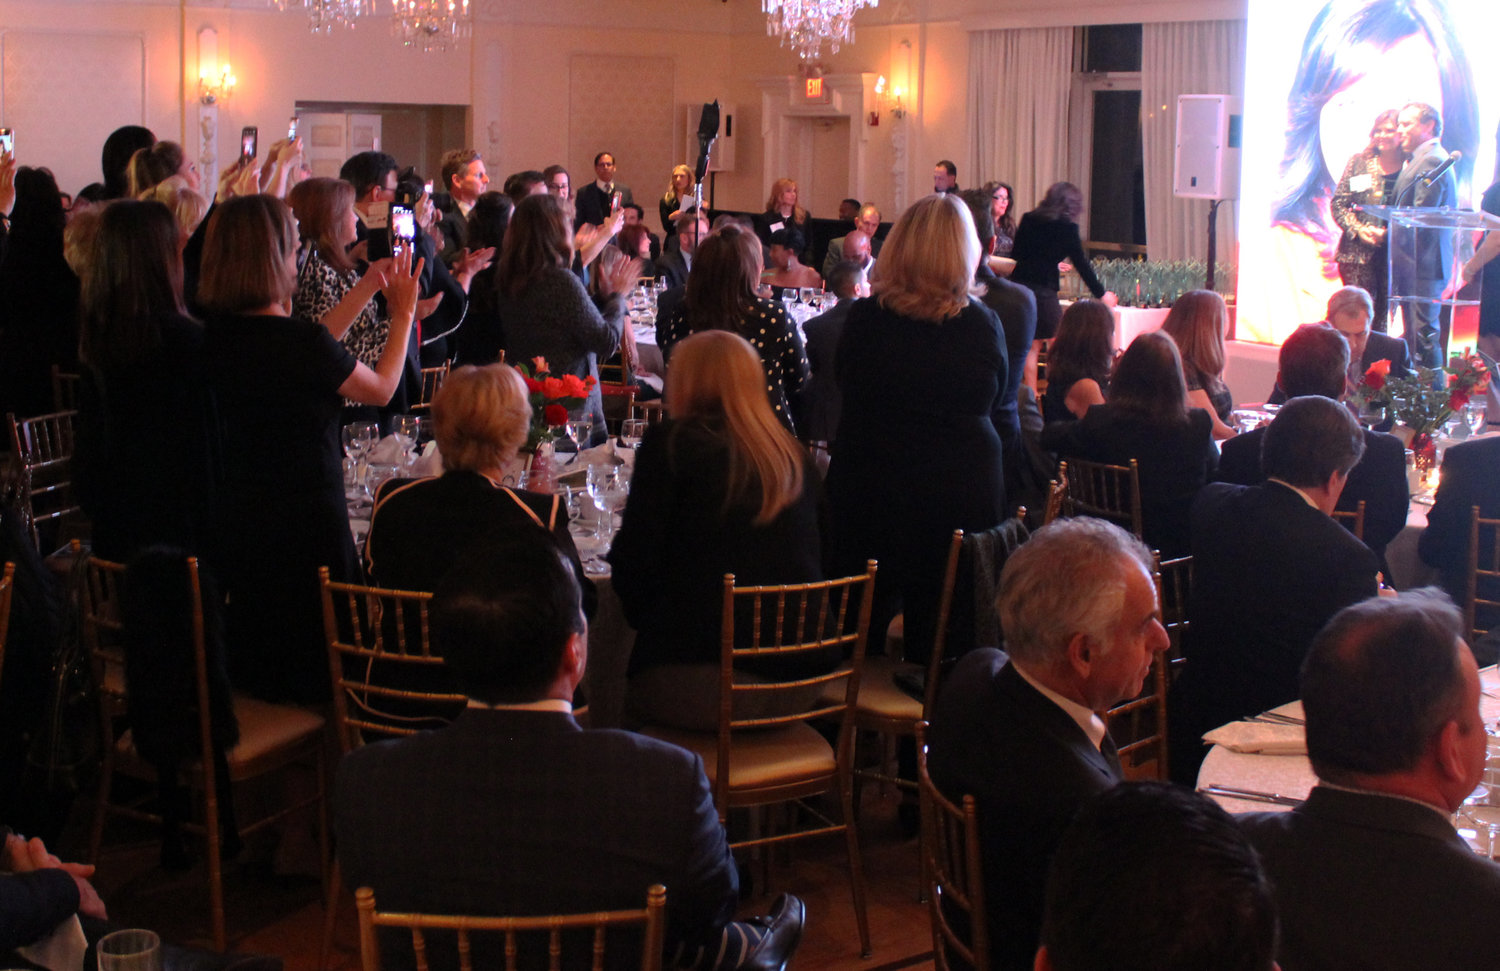 Dozens of members from large real estate firms turned out to support their colleagues who won awards.